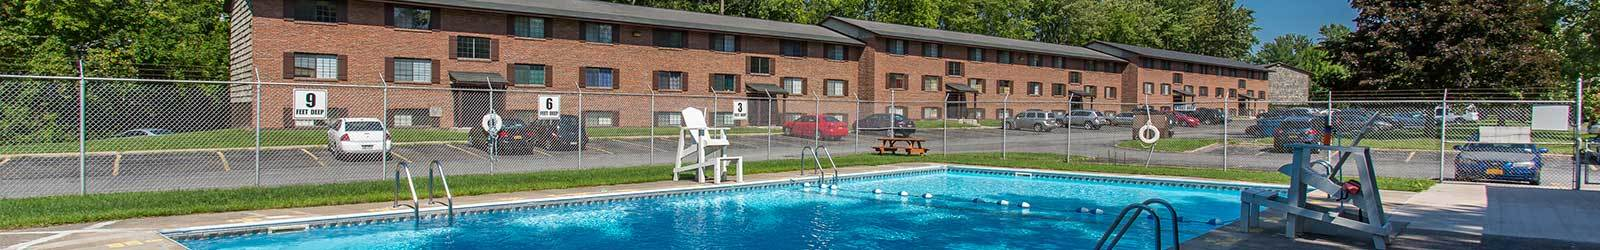 Amenities at The Residences at Covered Bridge